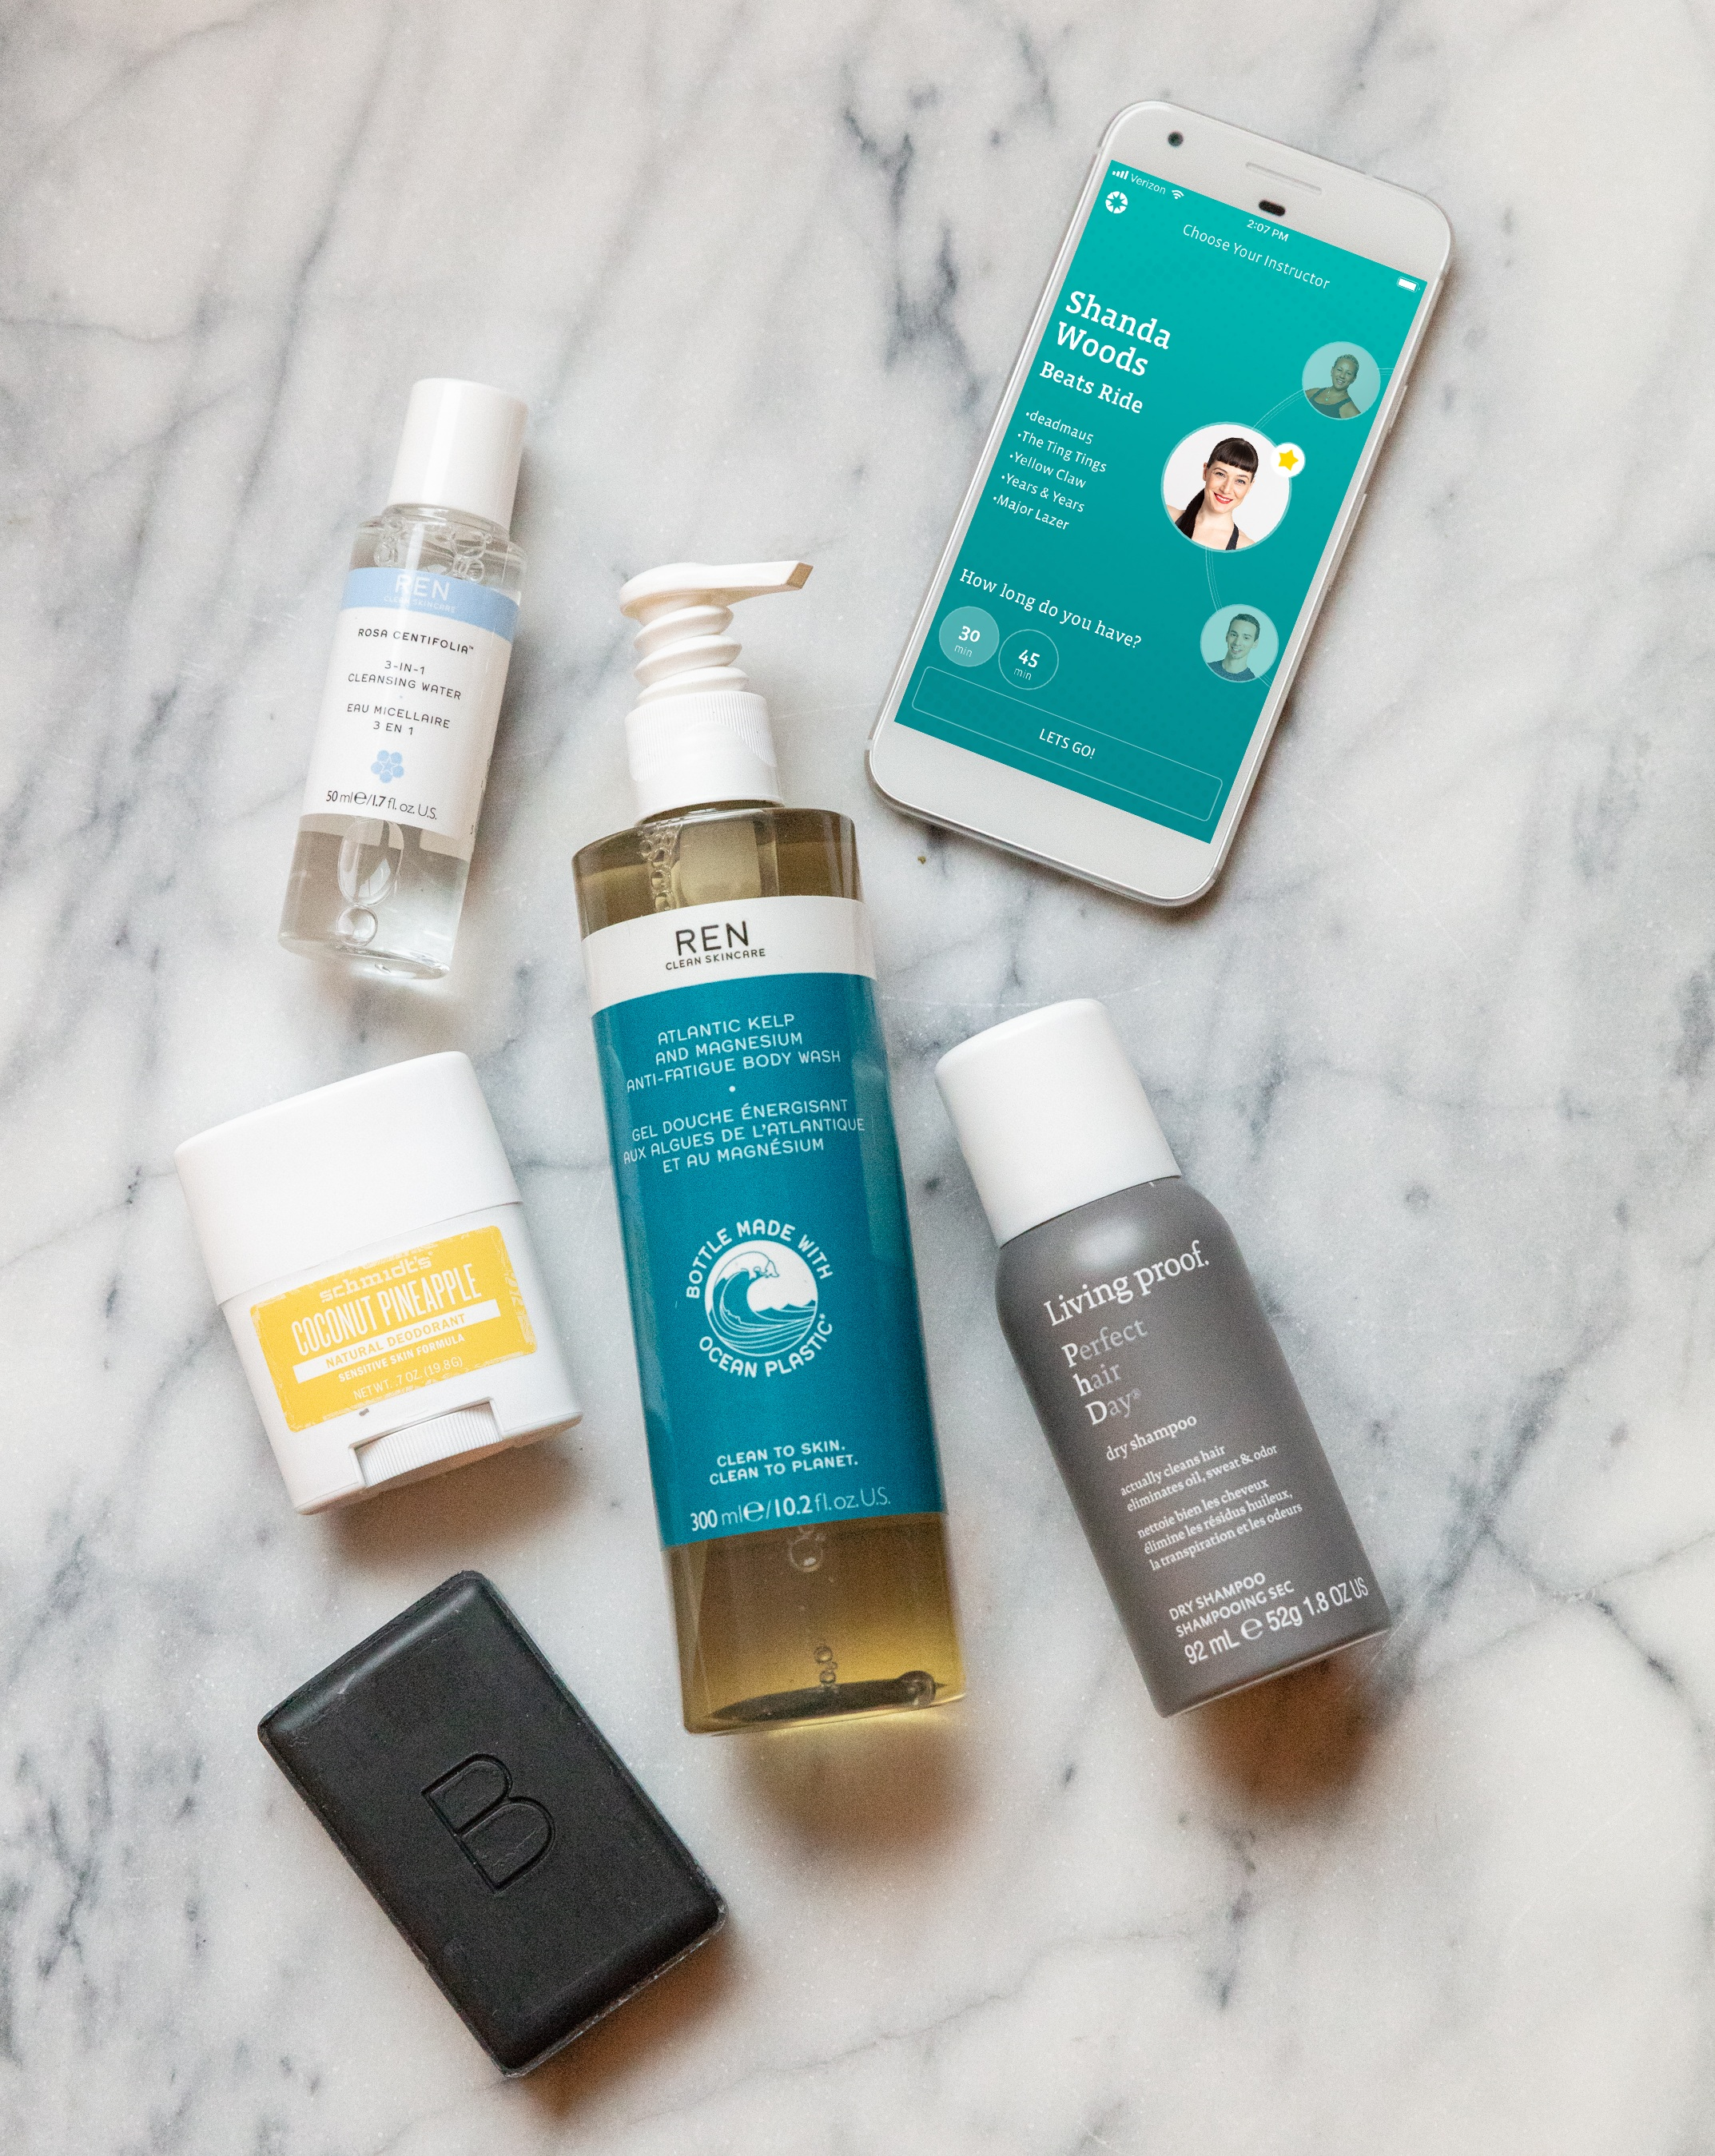 From top to bottom: REN Skincare Rosa Centifolia™ 3-in-1 Cleansing Water, REN Skincare Atlantic Kelp & Magnesium Anti-Fatigue Body Wash, Schmidt's Deodorant in Coconut Pineapple, Living Proof Perfect Hair Day Dry Shampoo, Beautycounter Charcoal Cleansing Bar